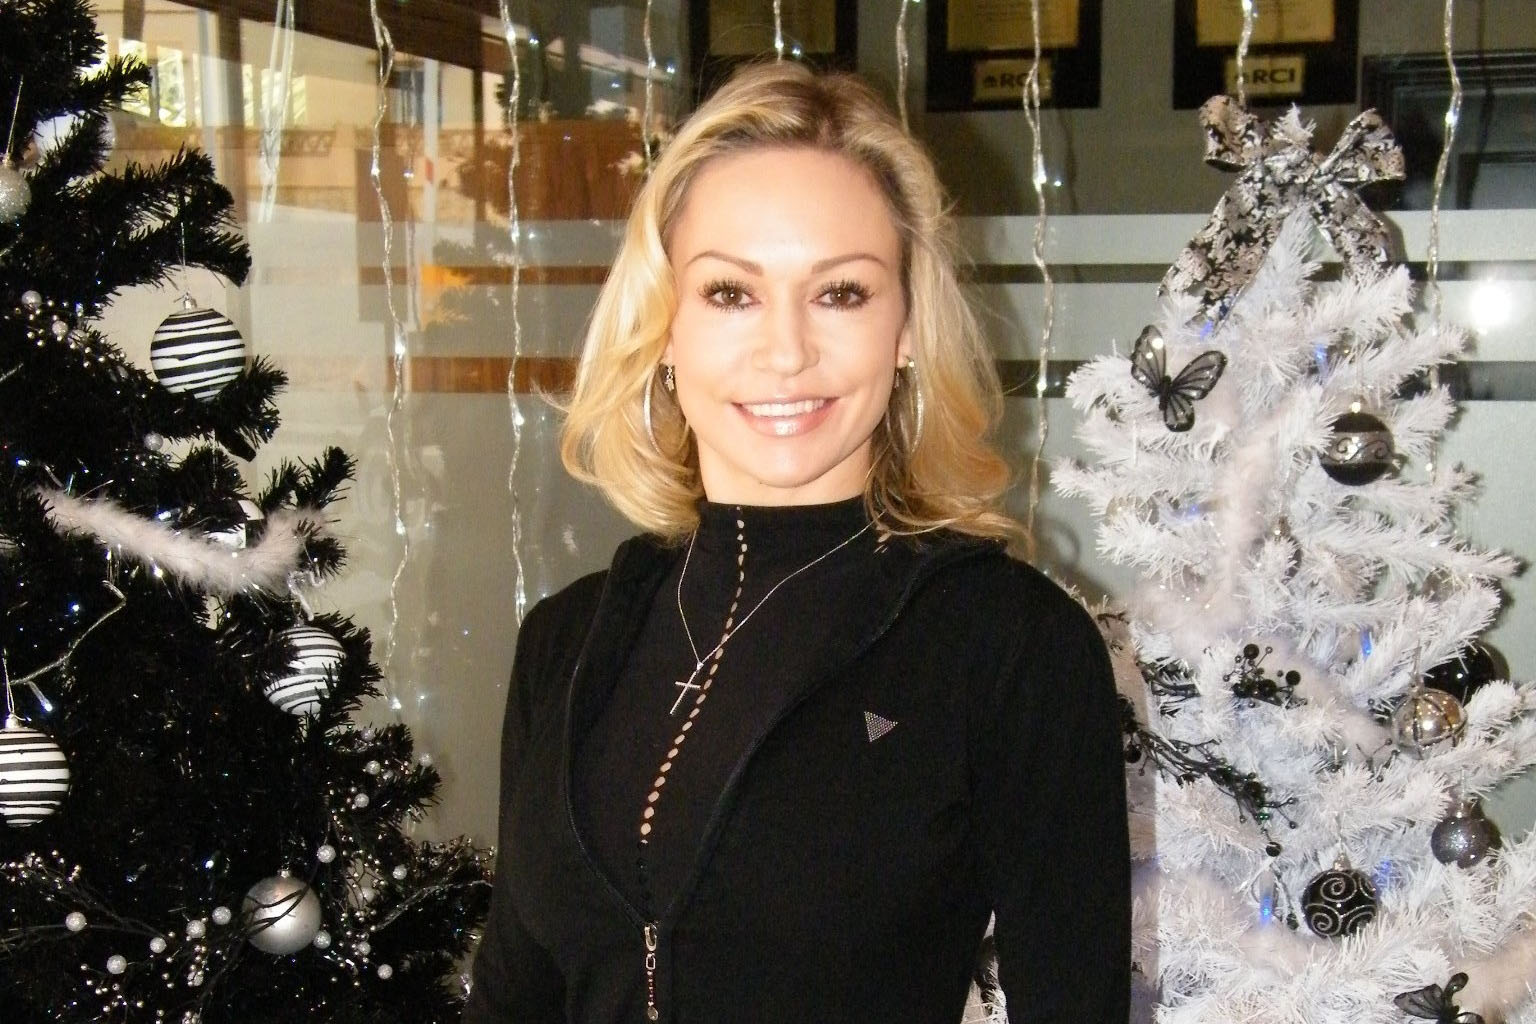 Kristina adding her own special glamour to seasonal decorations at Club La Costa World